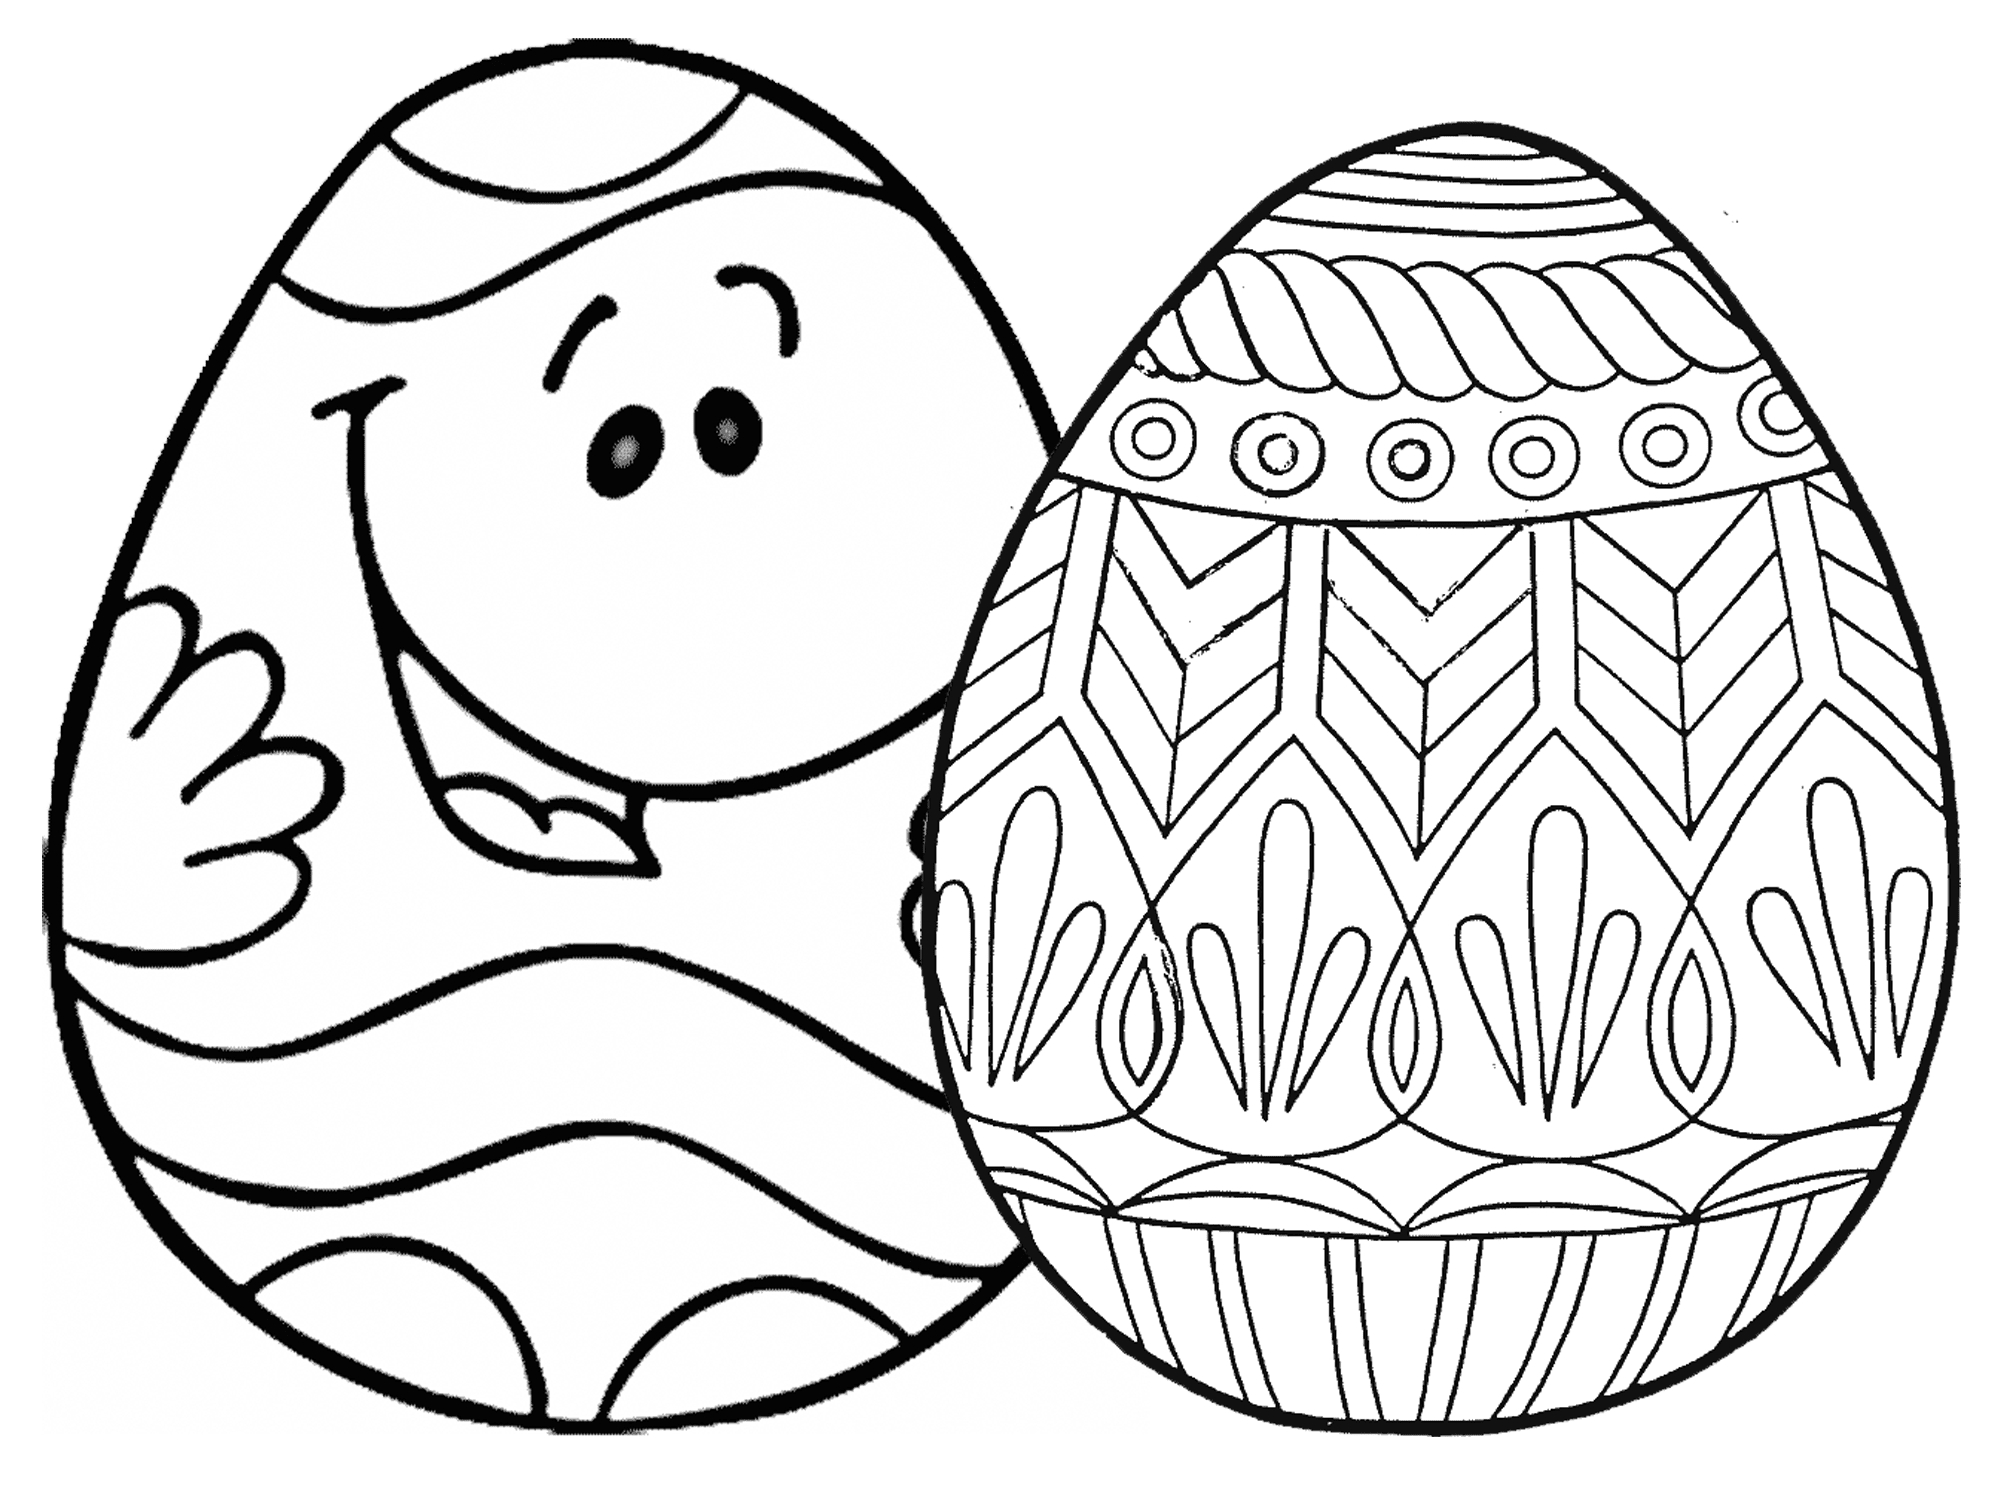 7 Places For Free, Printable Easter Egg Coloring Pages - Easter Egg Coloring Pages Free Printable